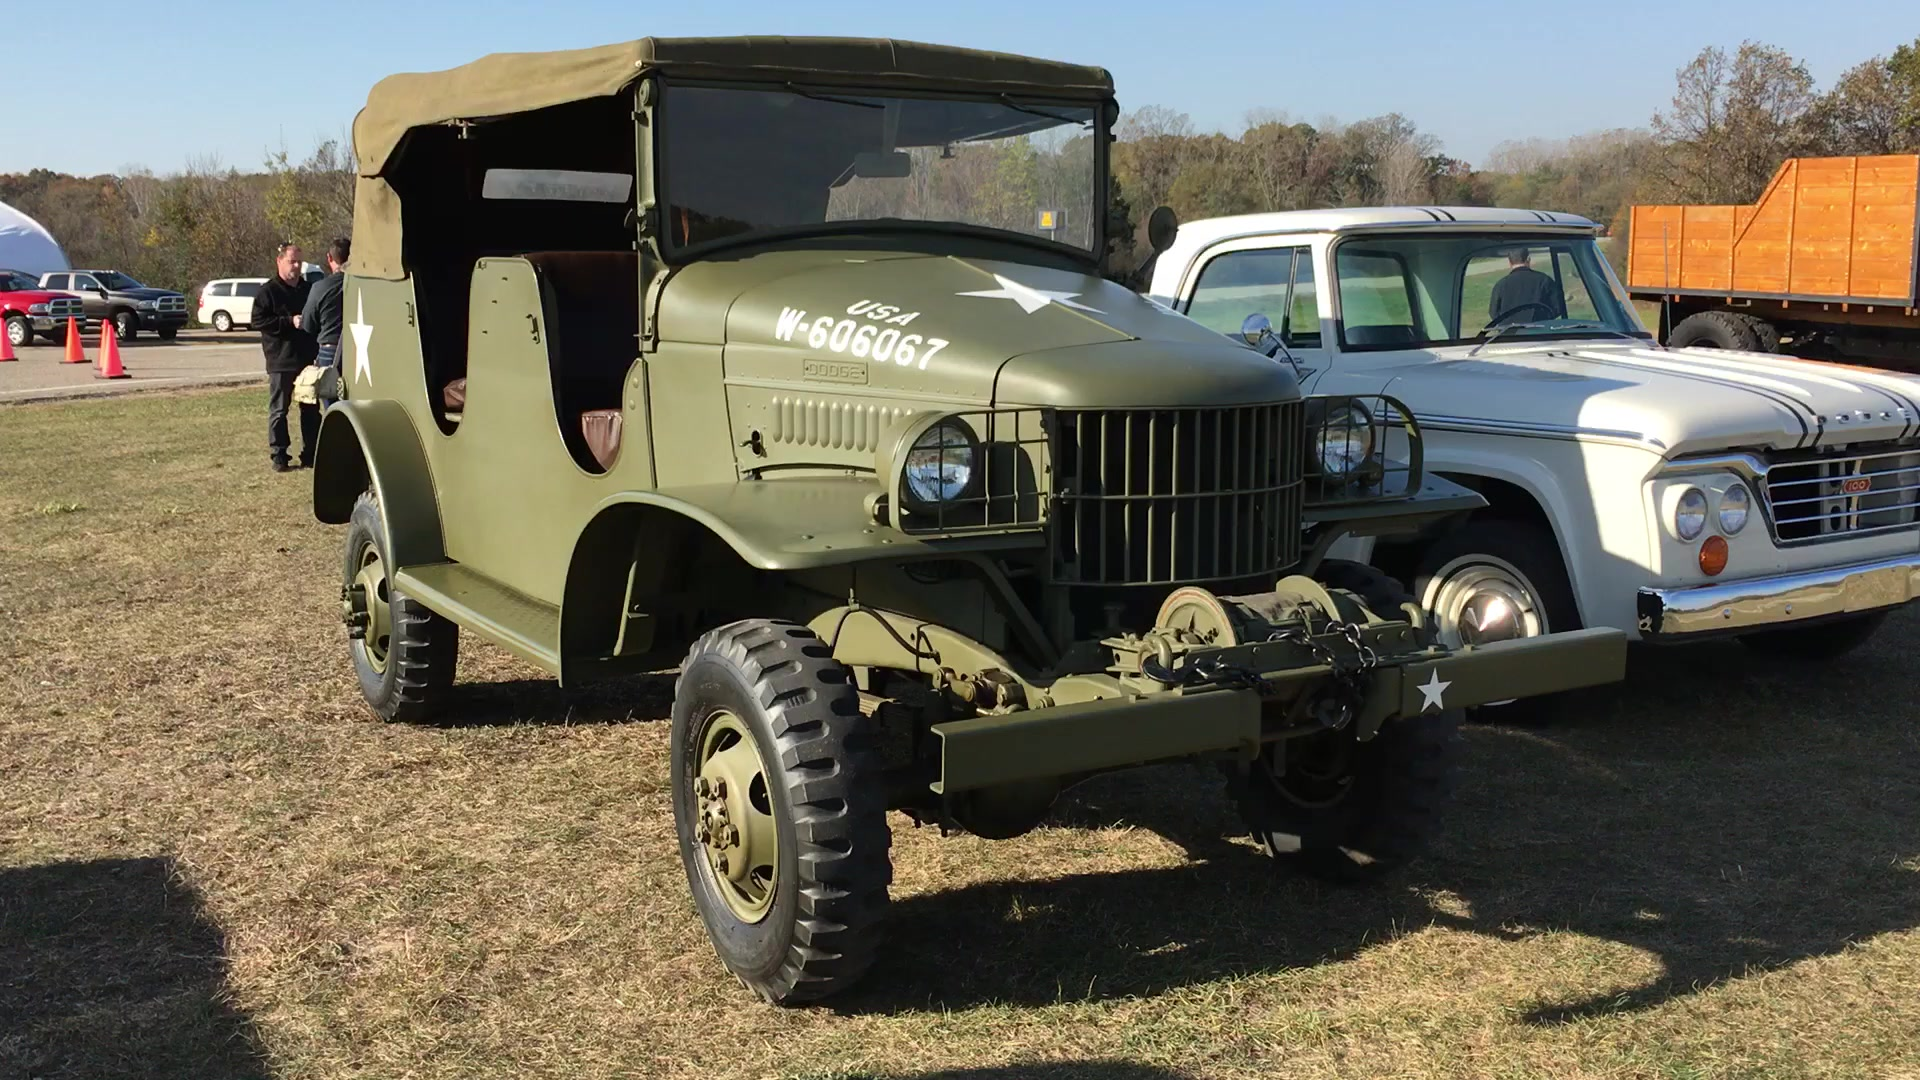 1941 Dodge WC Command Car Walkaround | Autoblog Short Cuts